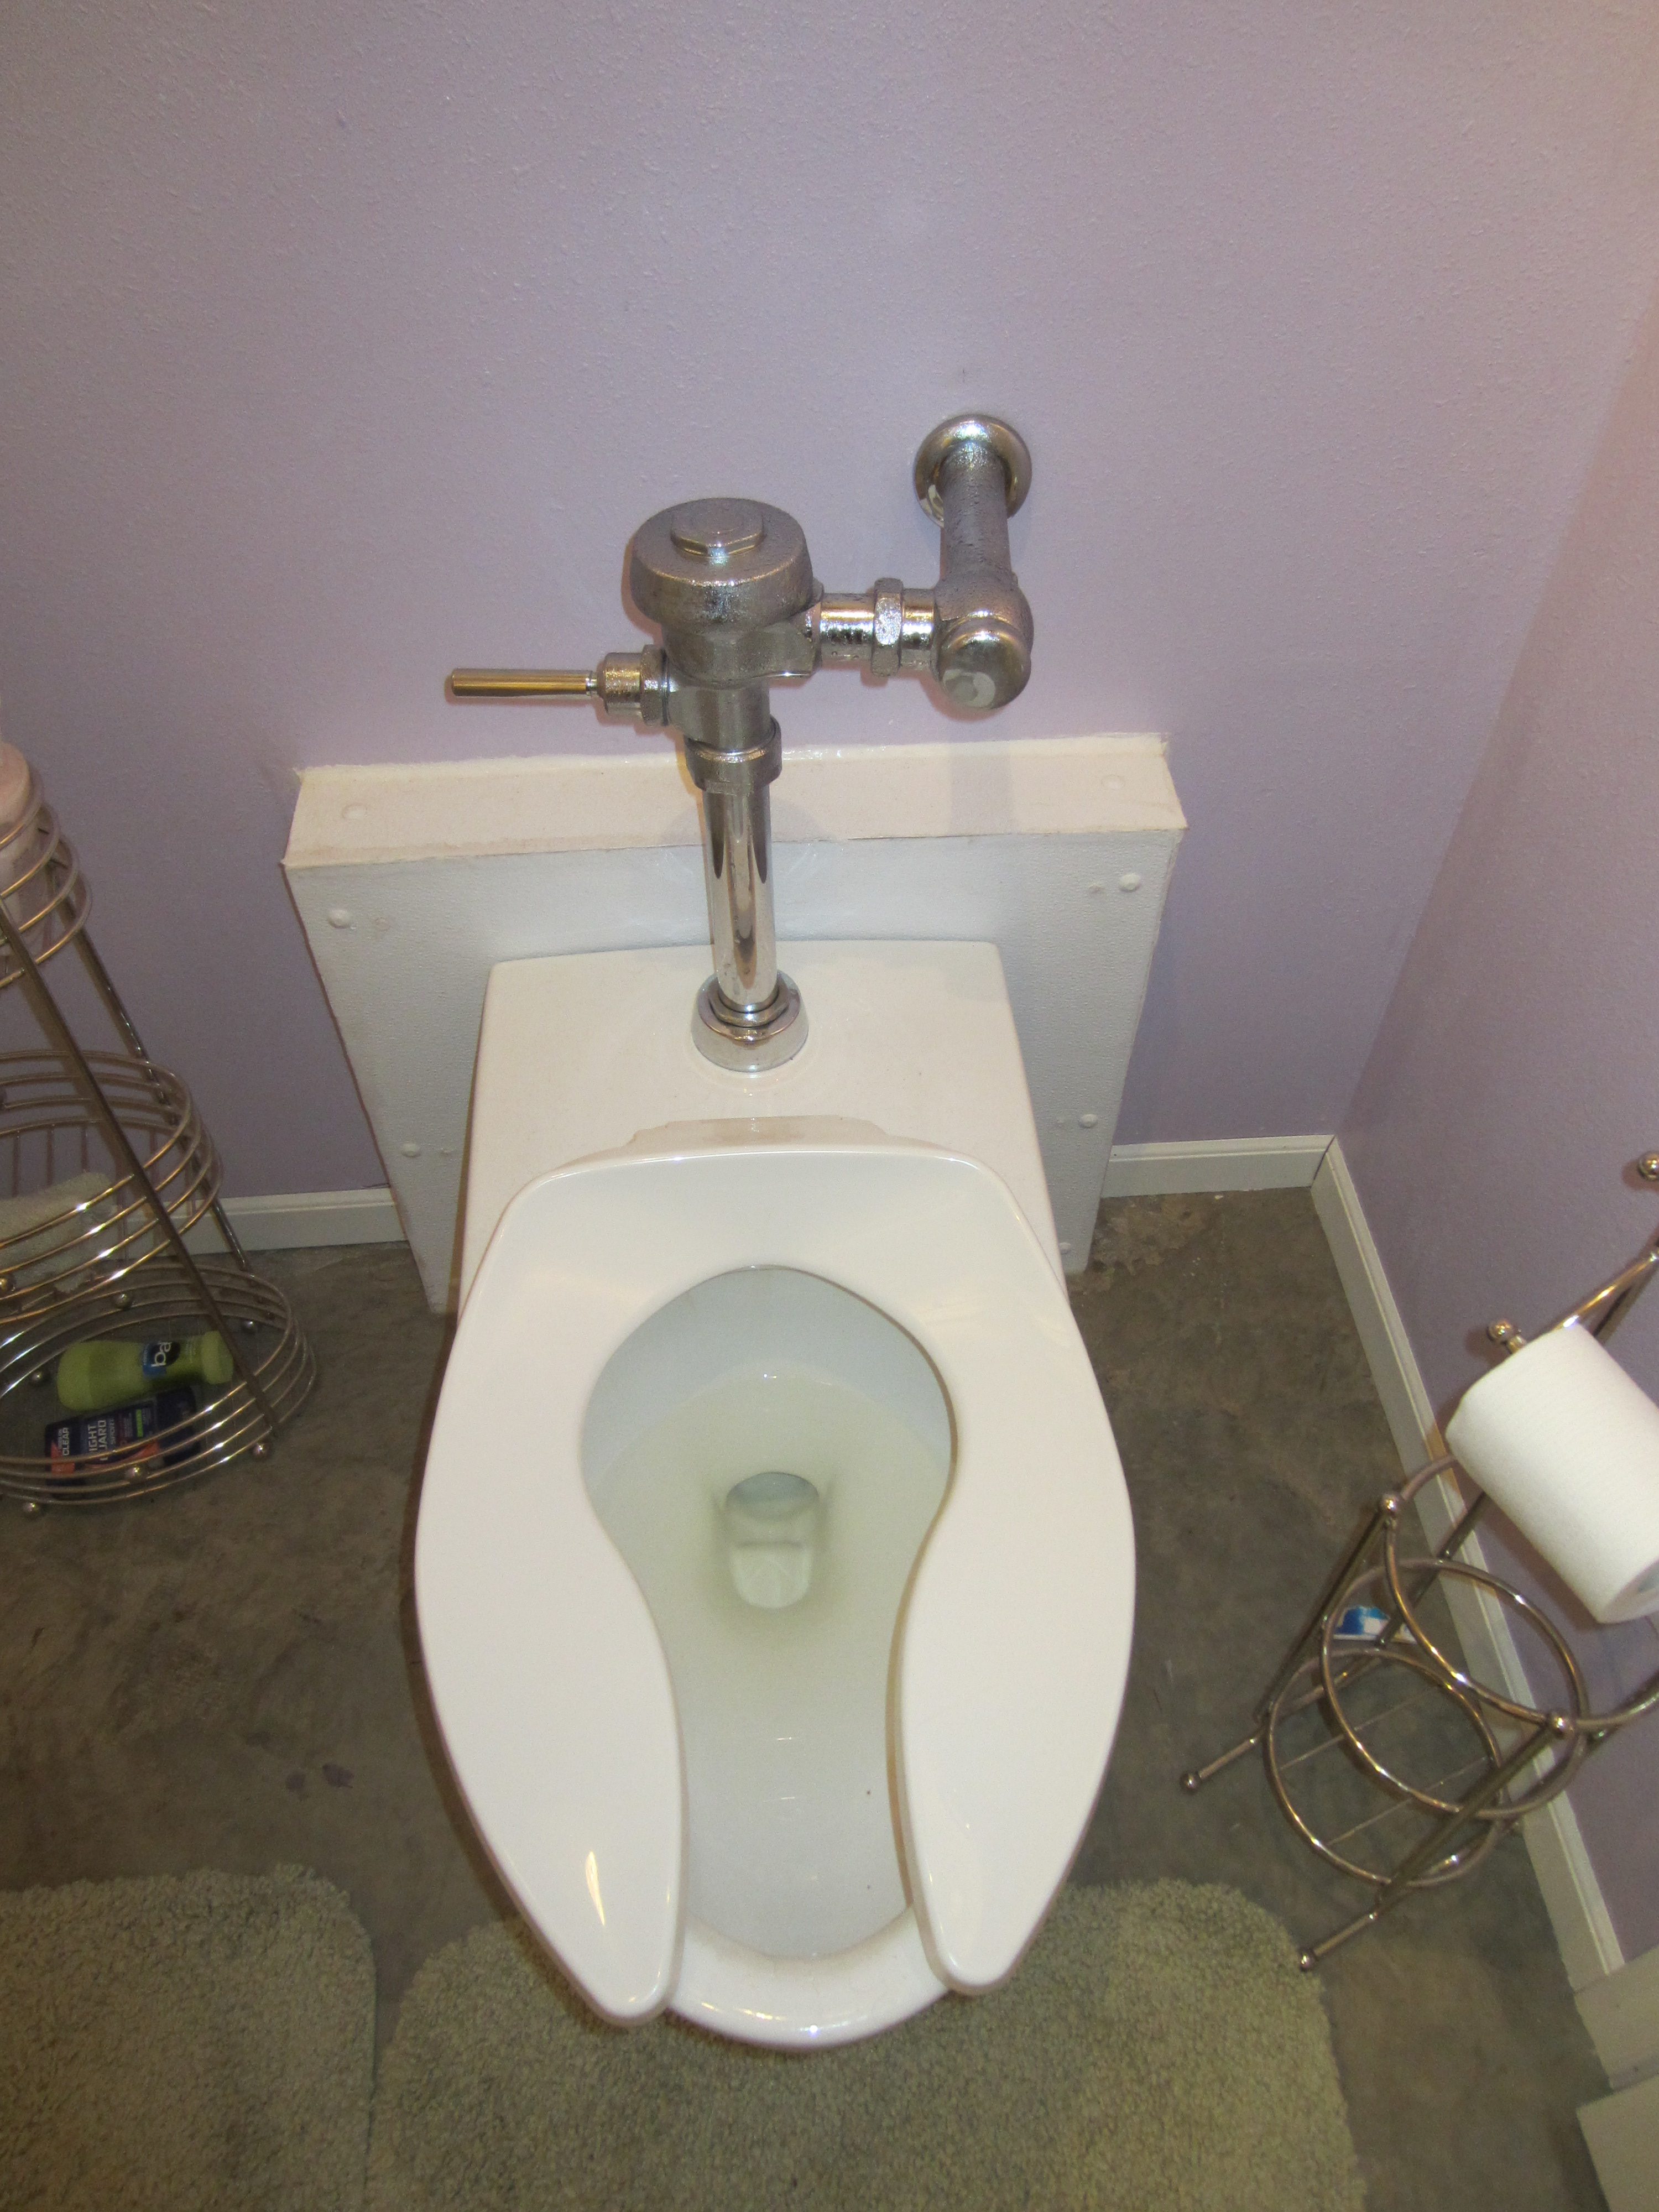 Commercial Toilets : DIY: Making a Commercial Toilet work with Residential plumbing ...